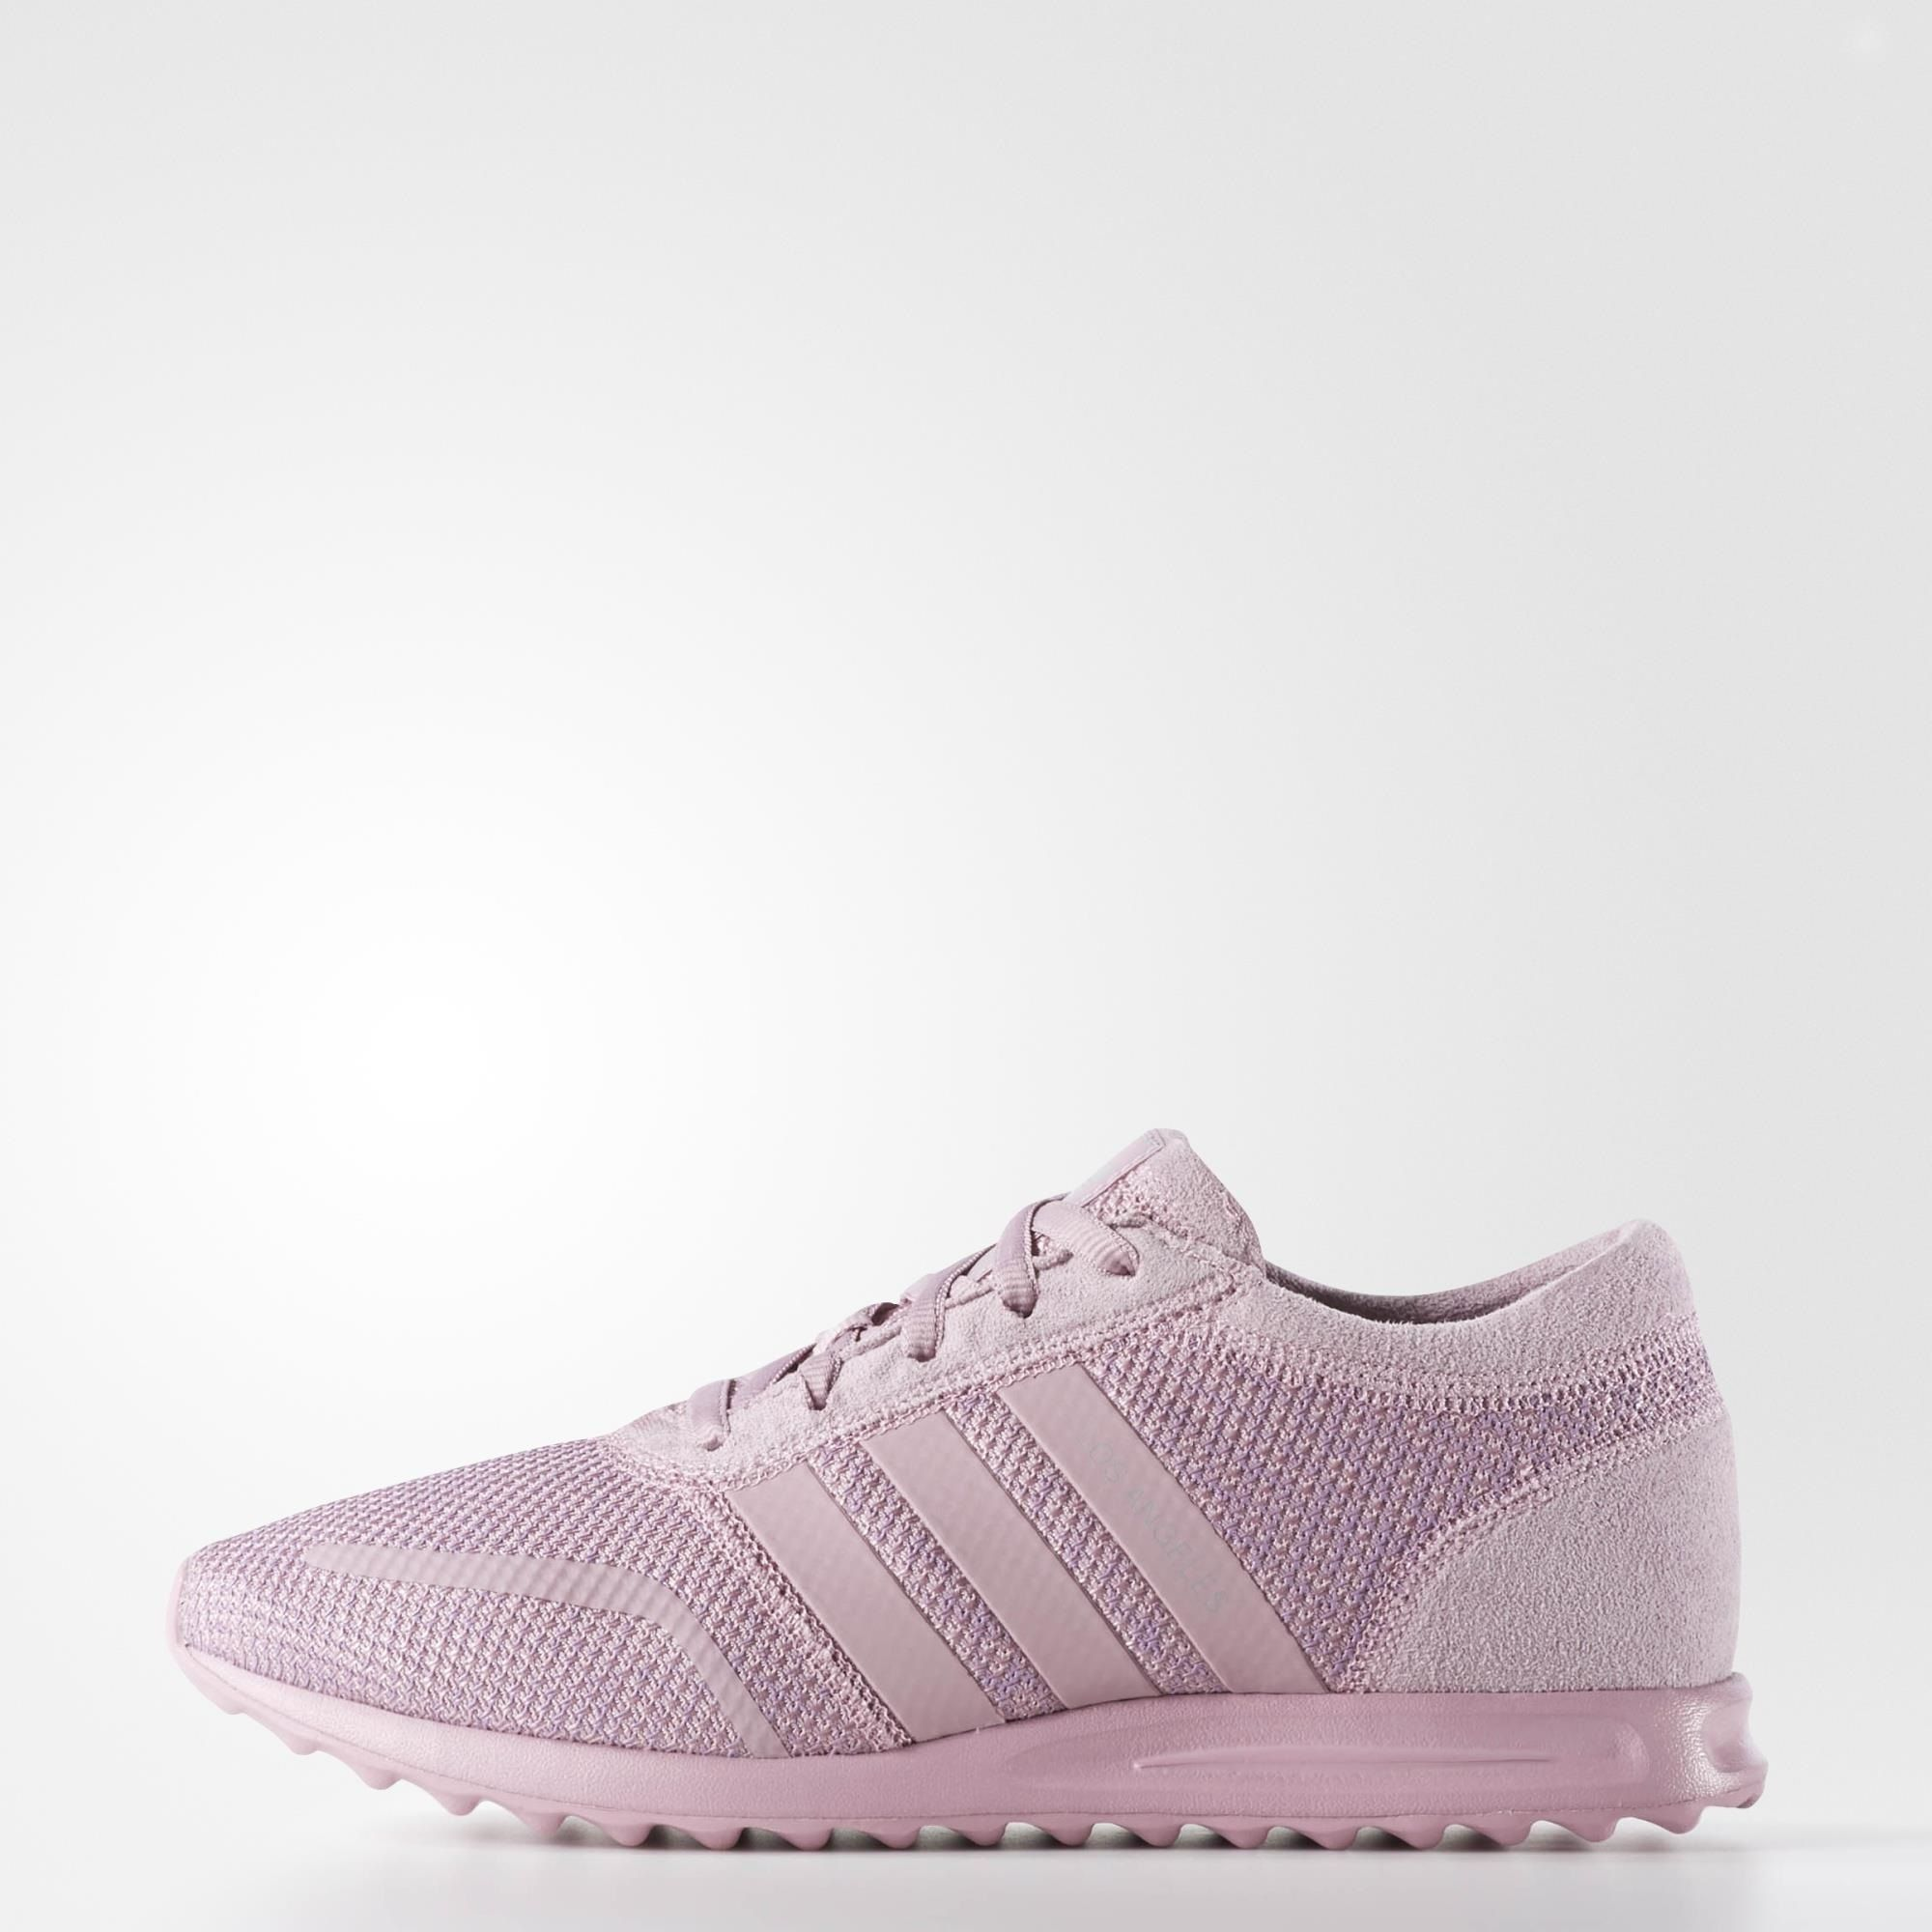 san francisco 2eea2 f2529 Los Angeles star-studded, sporty street style is the inspiration for these  womens shoes. Featuring iconic design lines from the LA Trainer,…